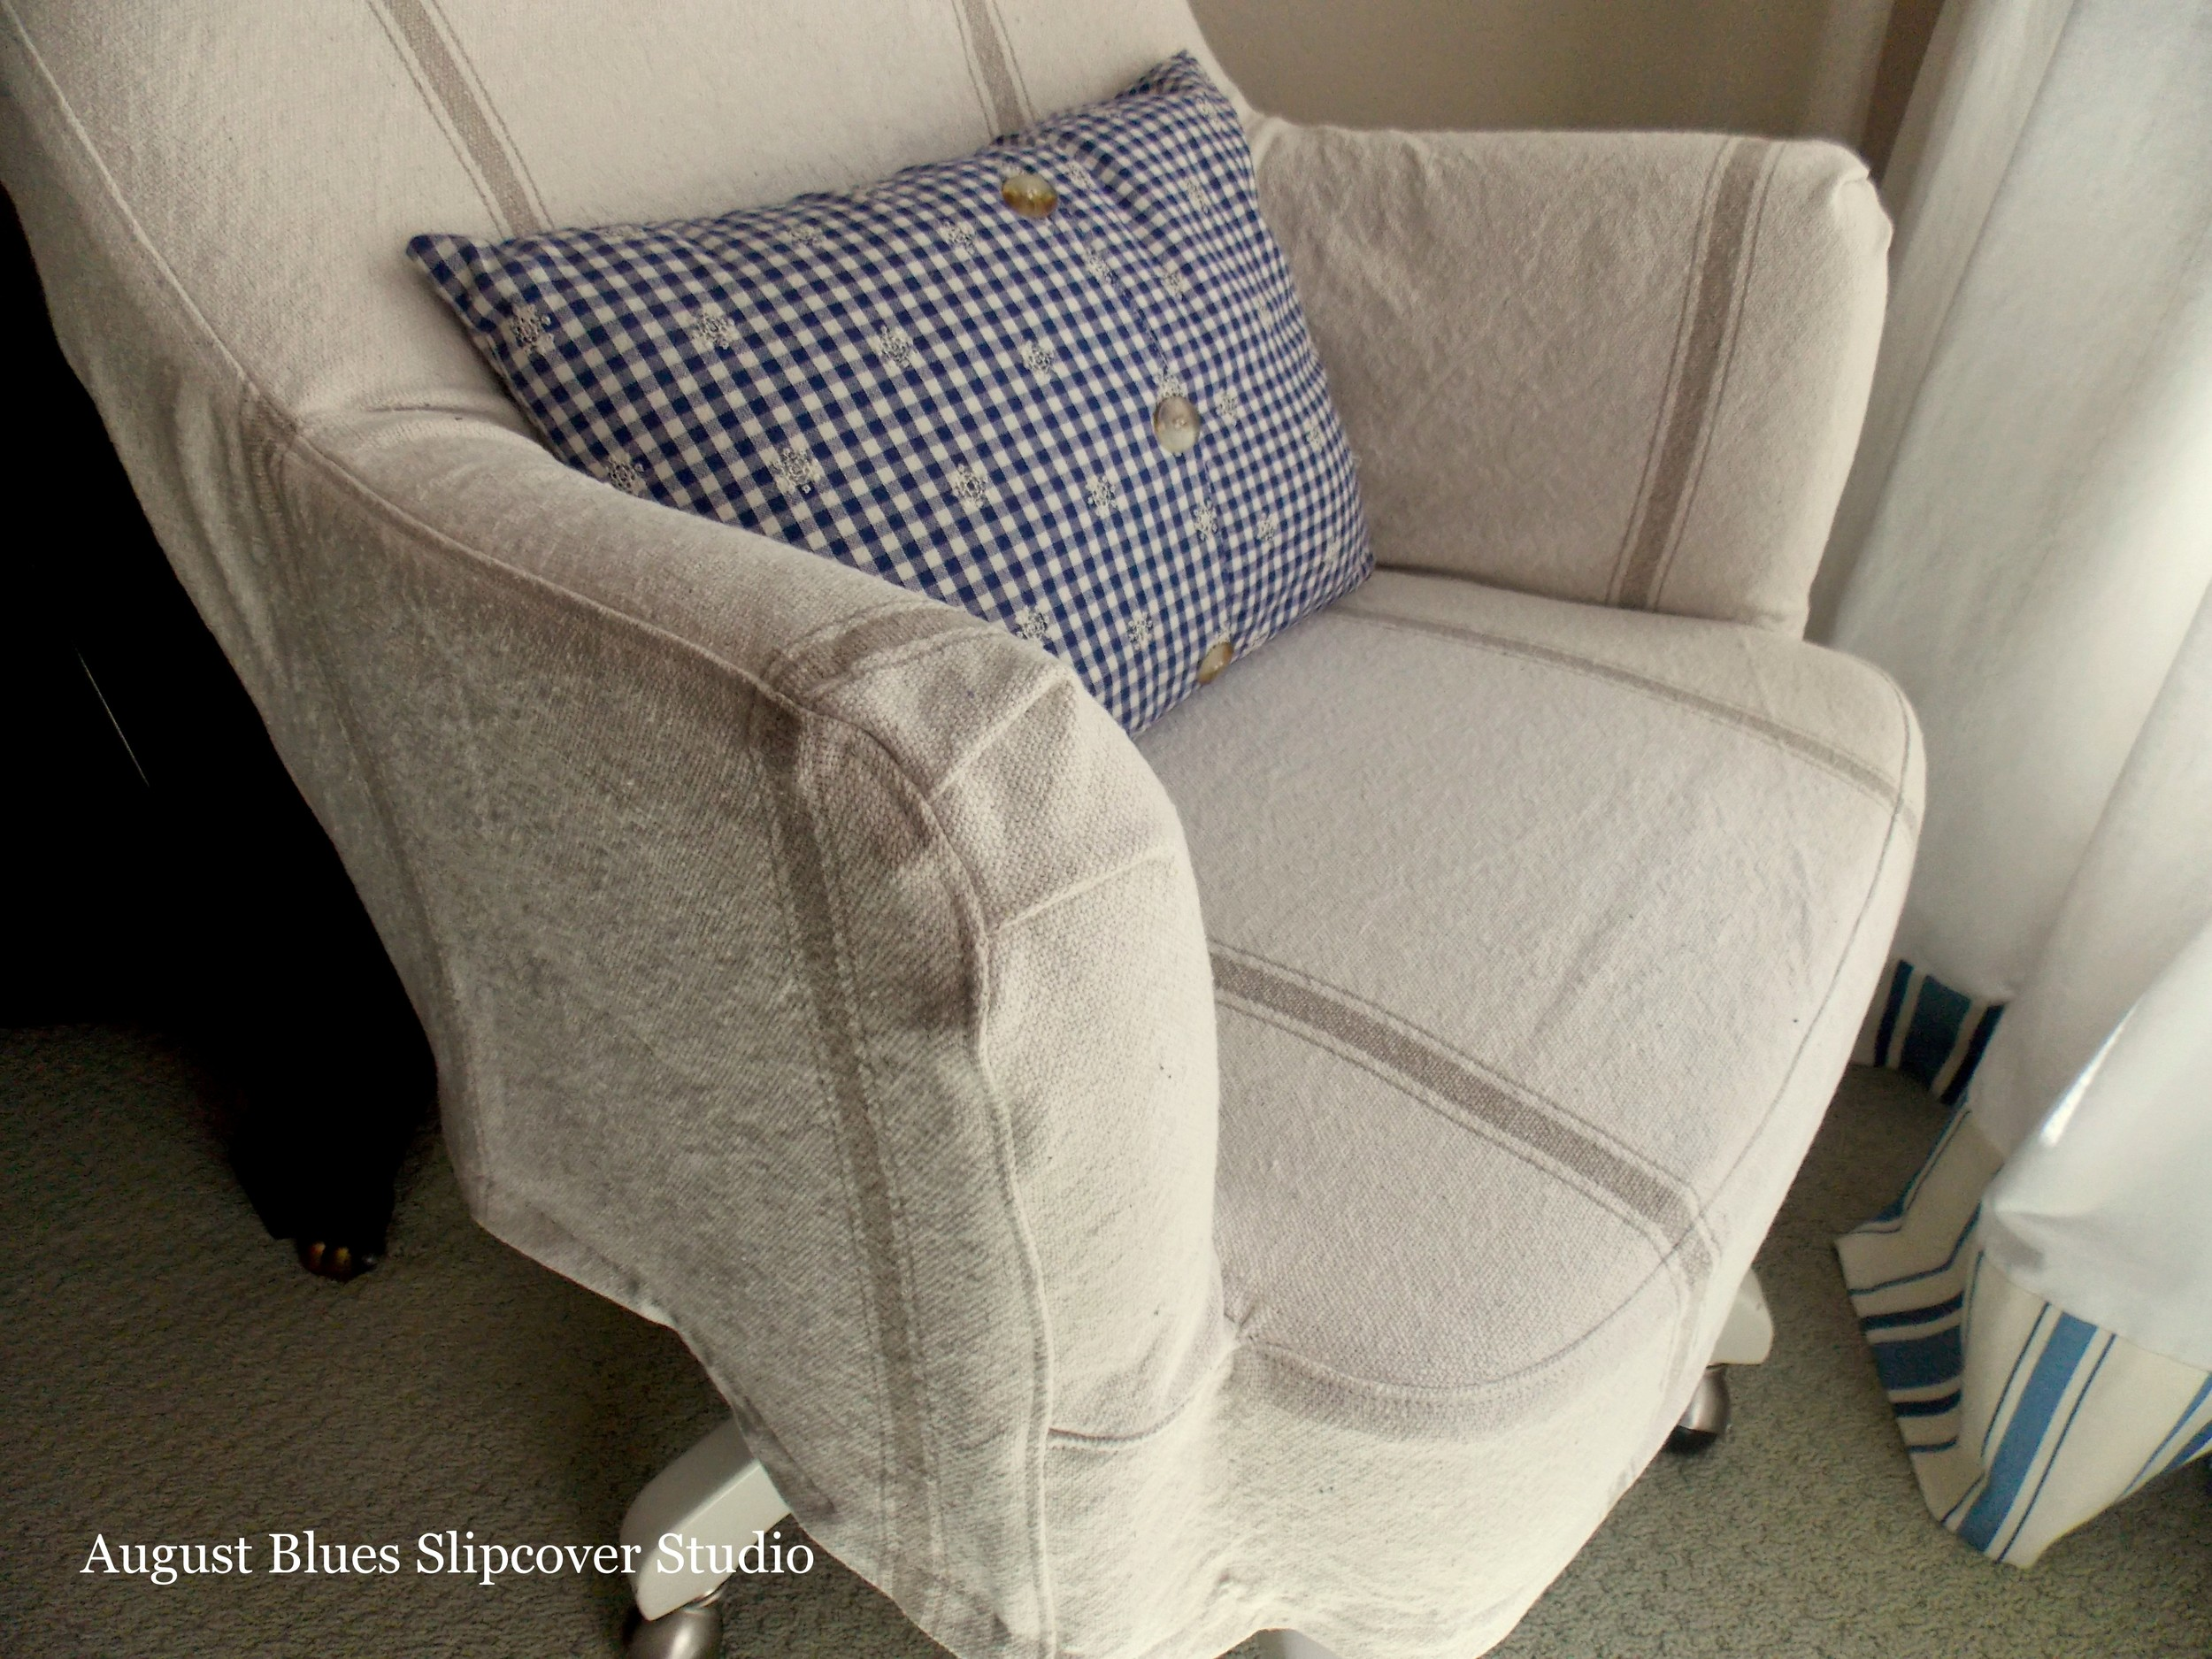 Grain Sack Desk Chair Slipcover — August Blues